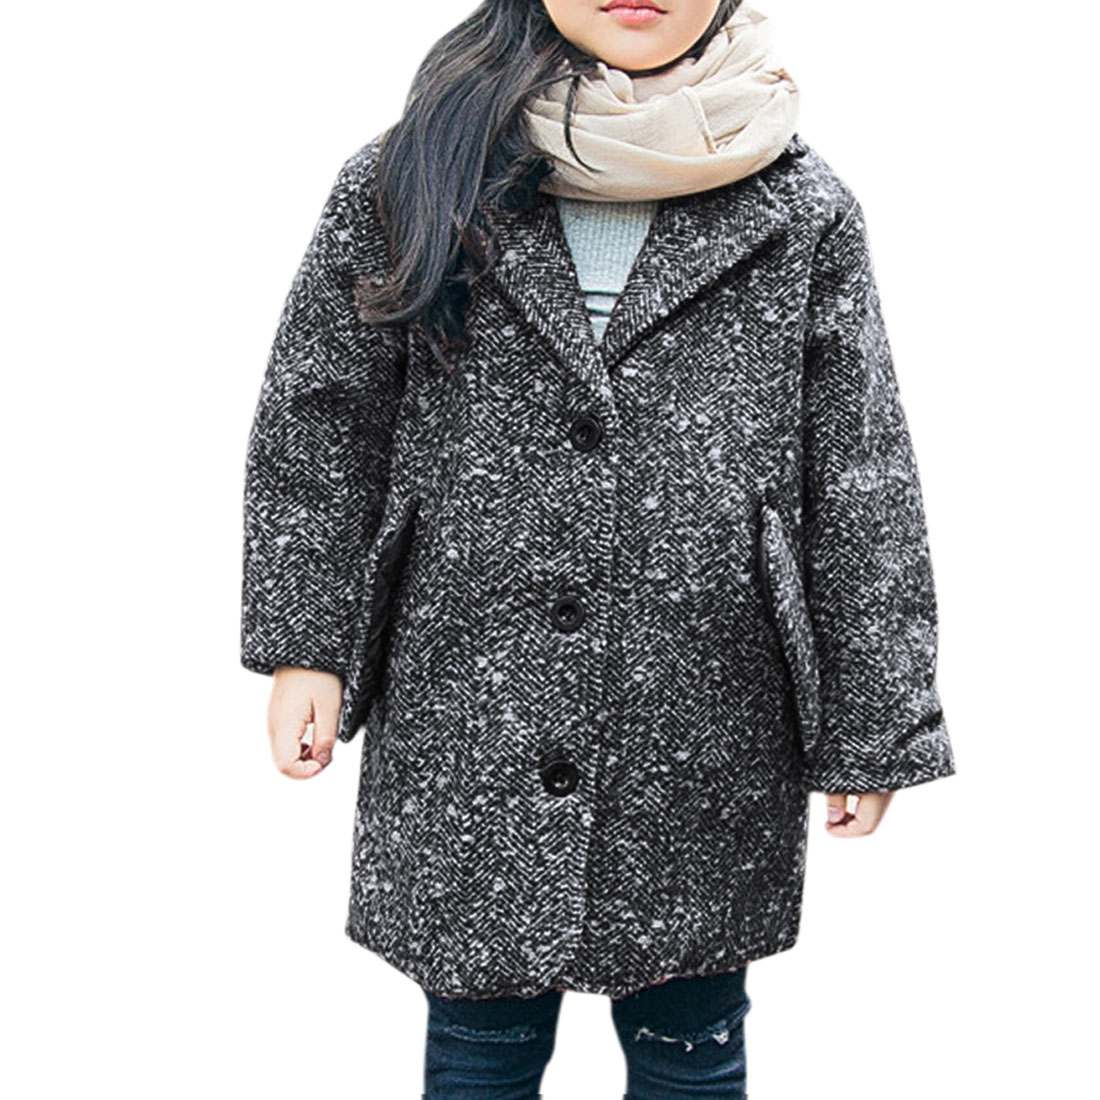 Girls Long Sleeves Button Down Tunic Worsted Coat ids Gray 12